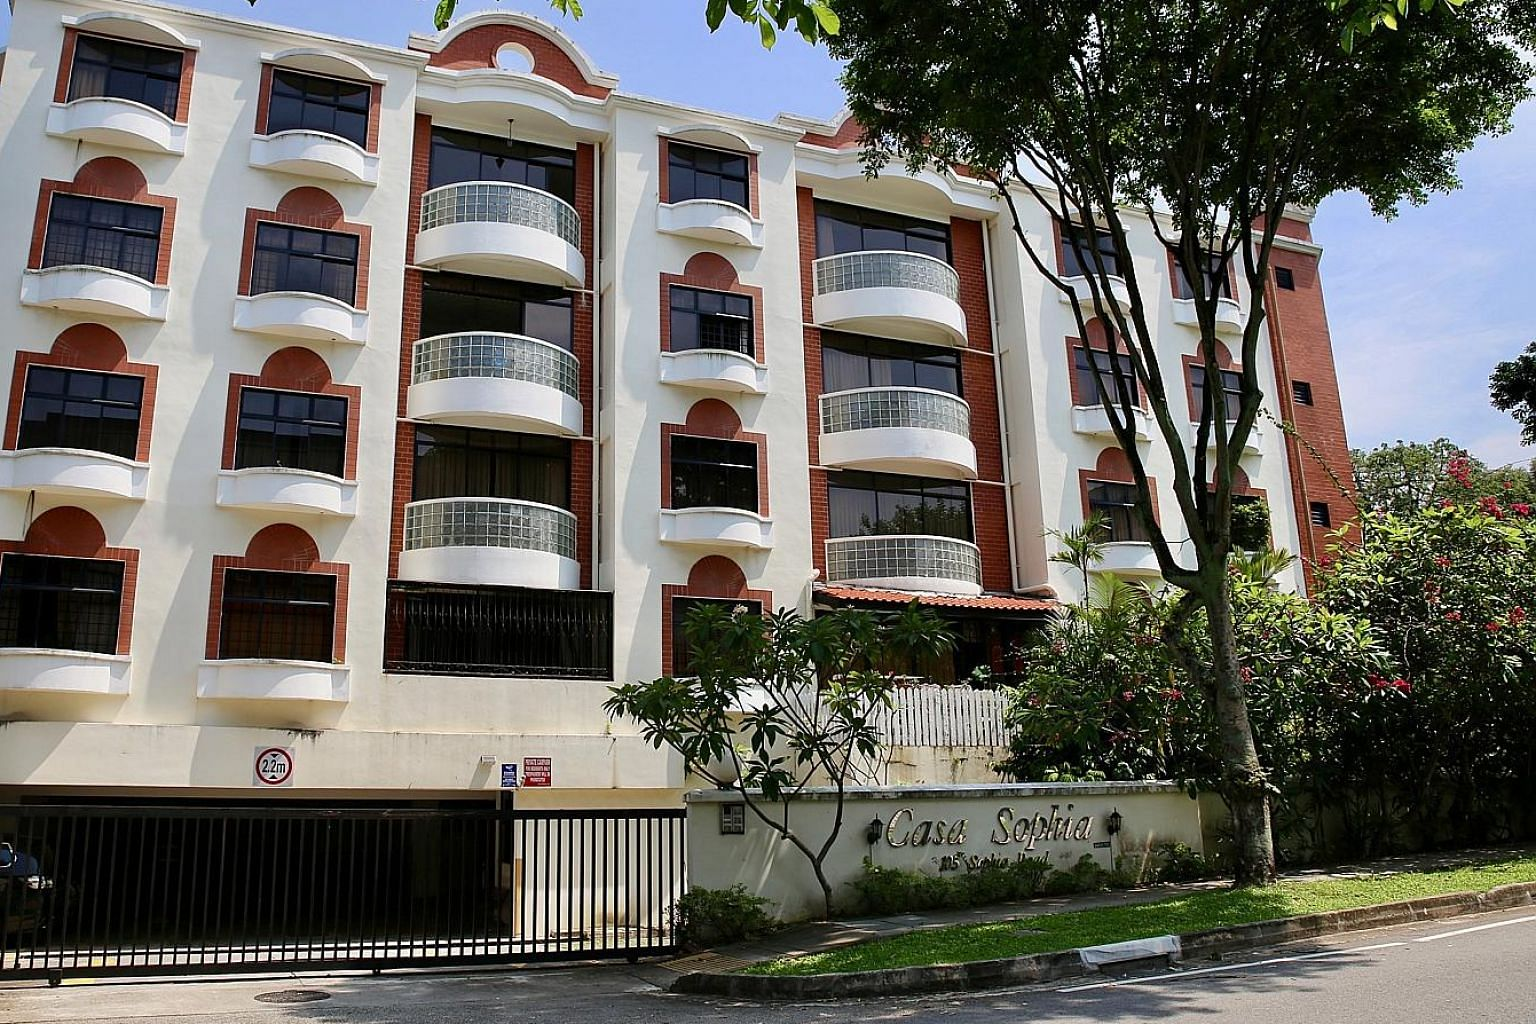 The 7 per cent cut in DC rates in sectors 34 and 35 could be due to the collective sale of Casa Sophia (above), said Ms Tricia Song of Colliers International.